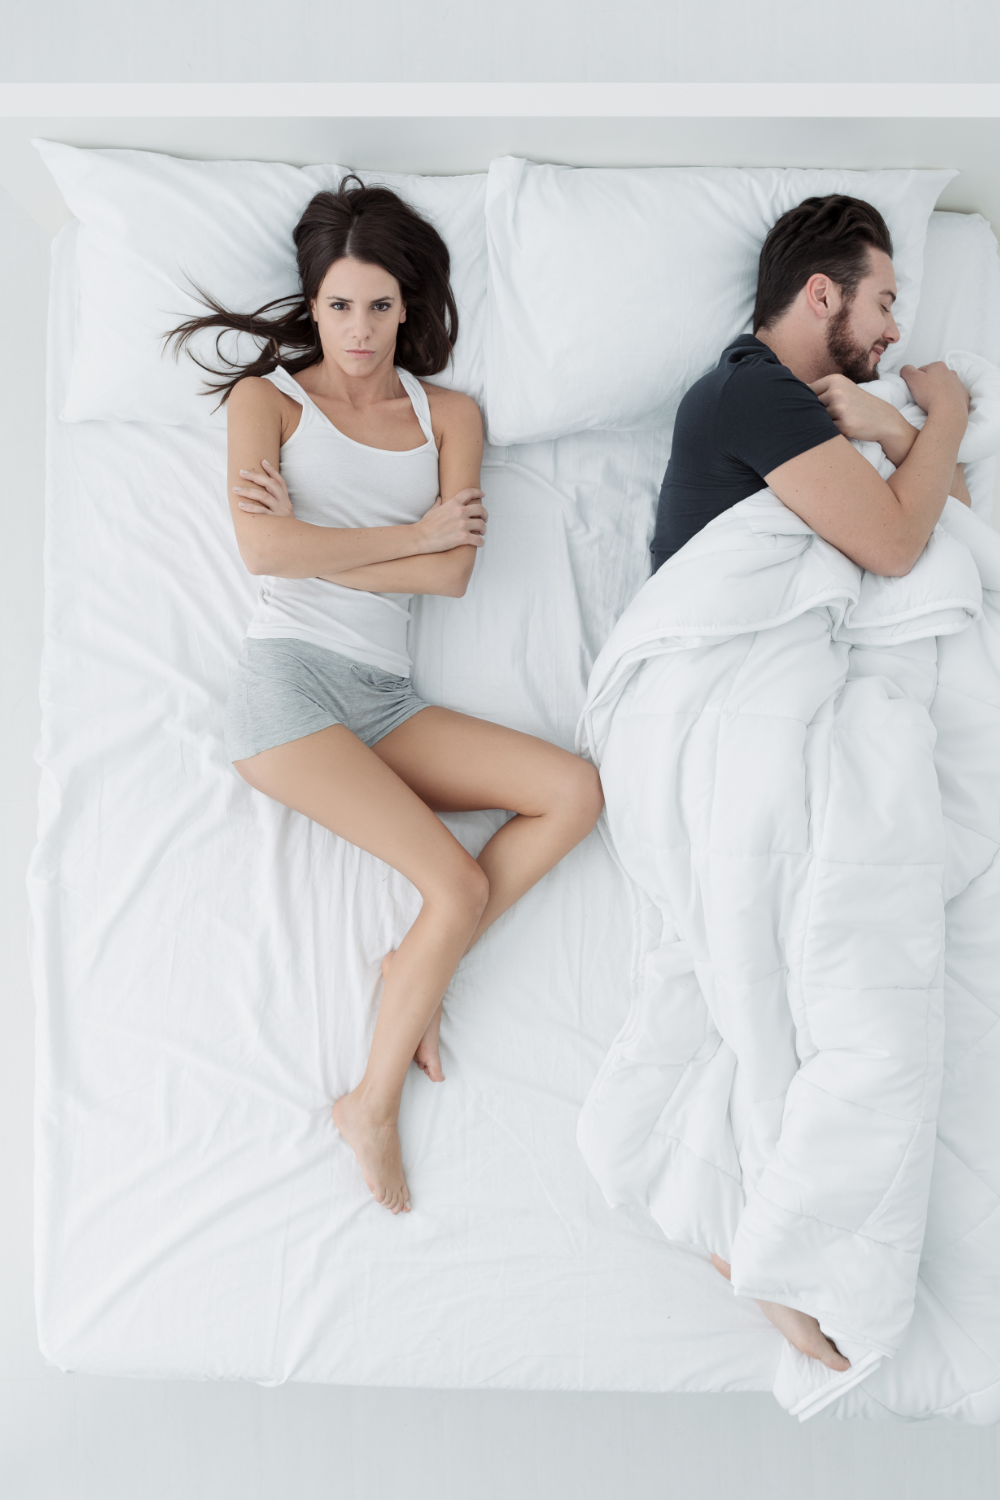 8 Reasons Why Getting It On Is Boring In Your Marriage